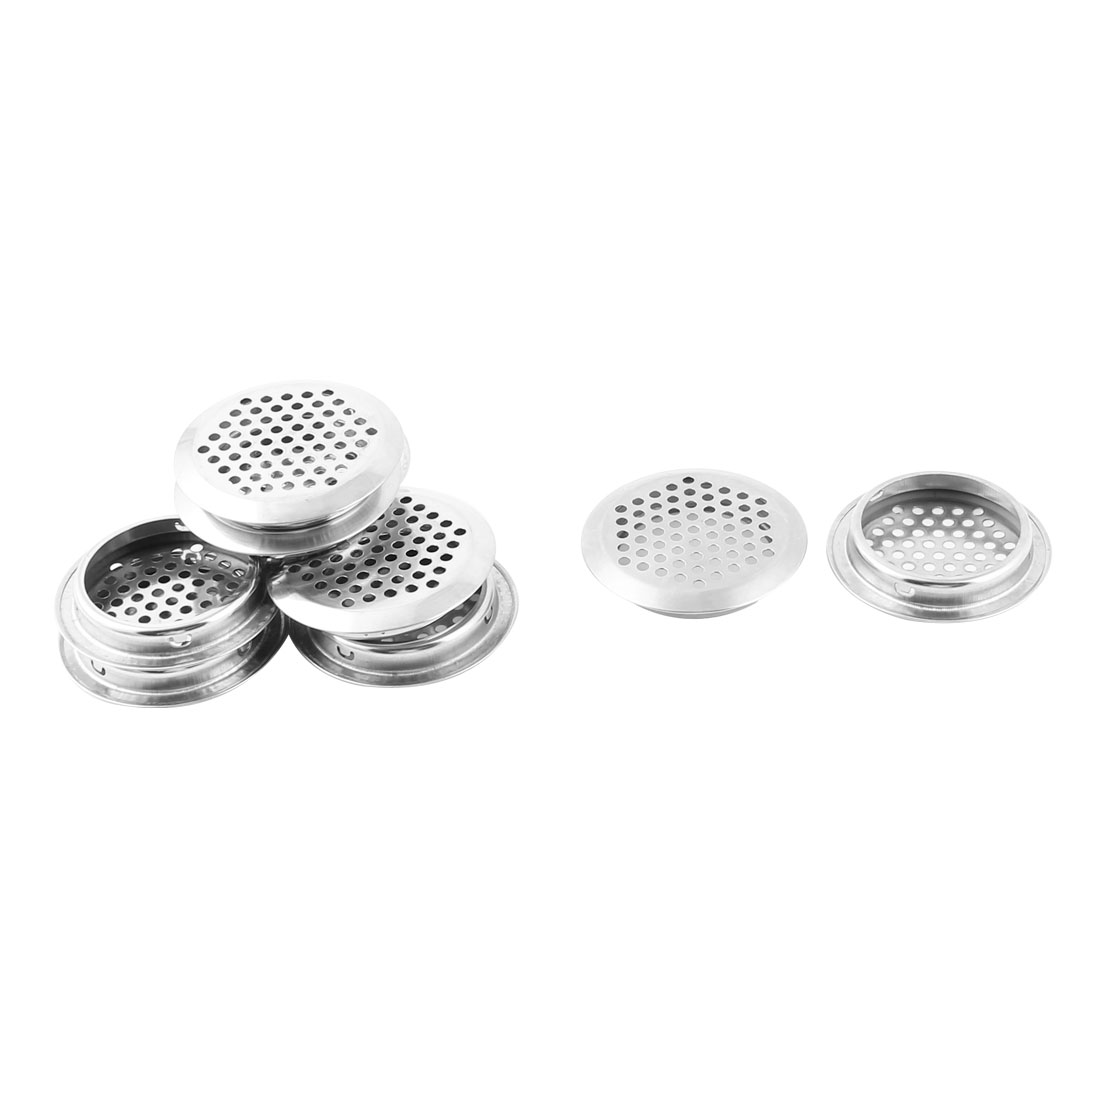 Home Barthroom Metal Round Mesh Hole Strainer Air Vent Ventilation Louvers Silver Tone 10pcs